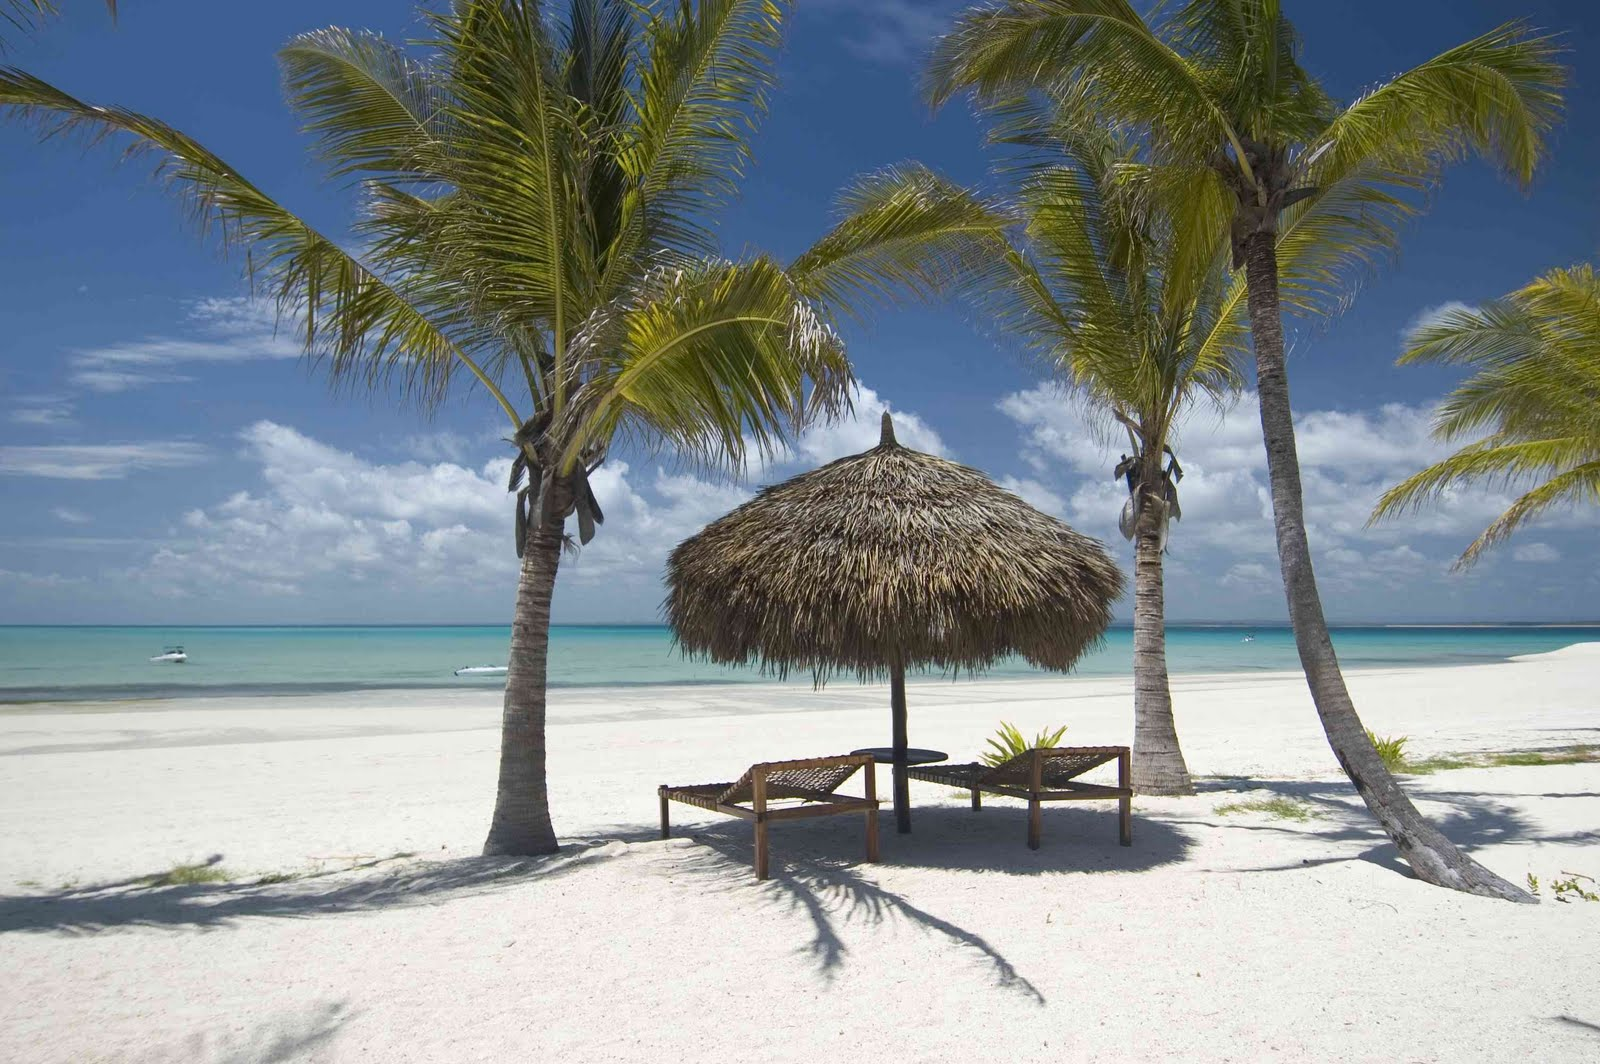 Pemba and matemo holiday package pemba mozambique accommodation - Mozambique Matemo Island Now Till 15 June 2011